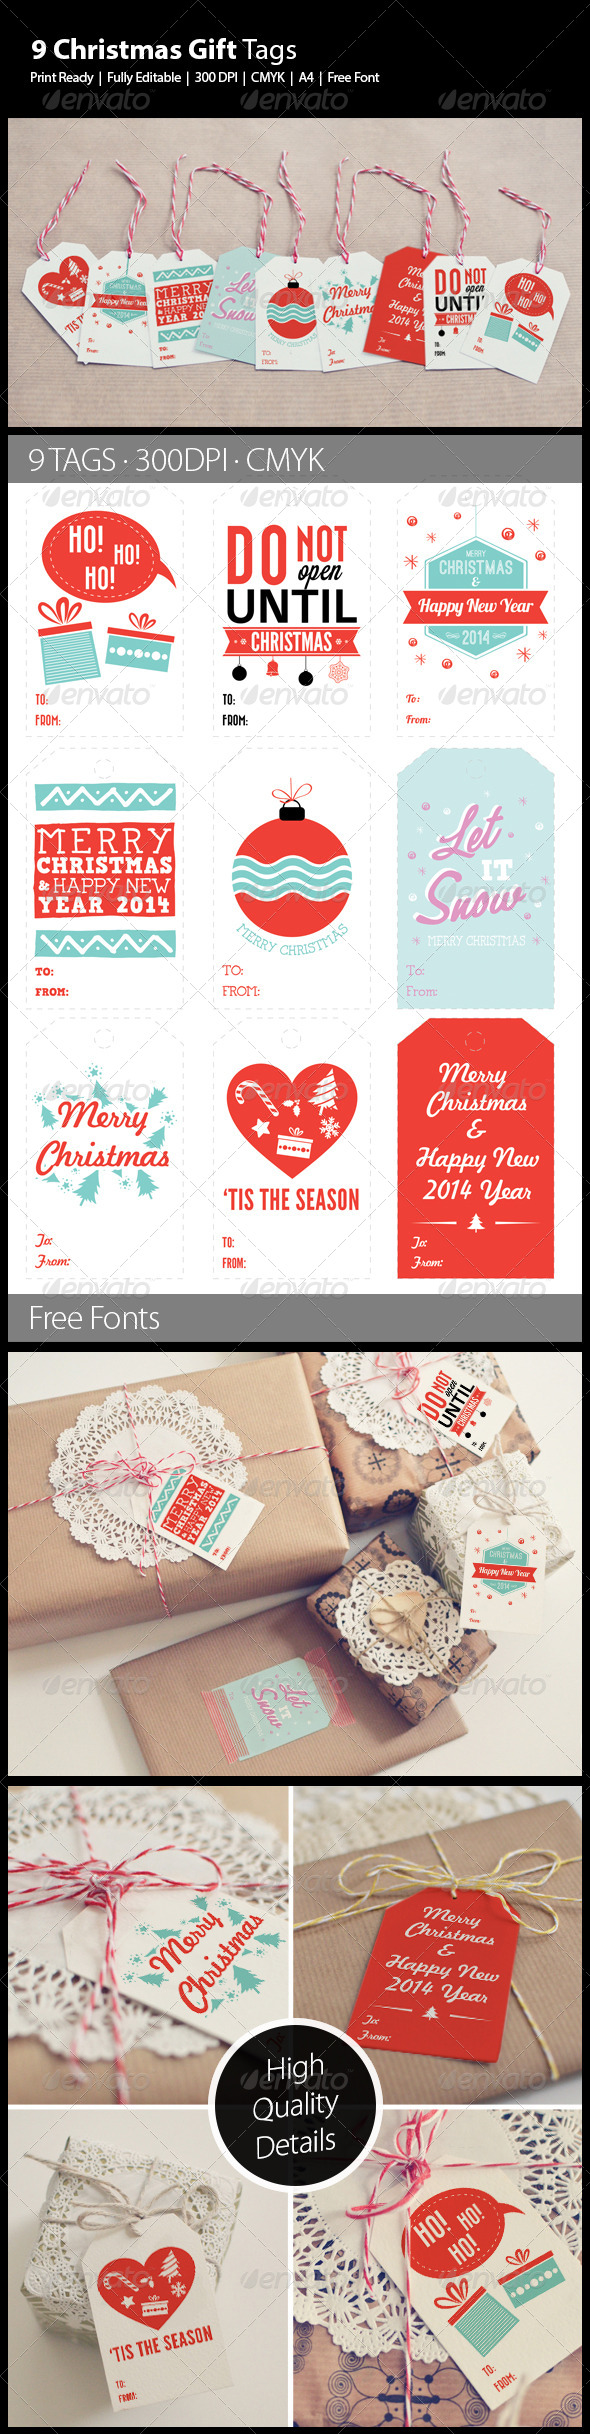 GraphicRiver 9 Christmas Gift Tags 6243331